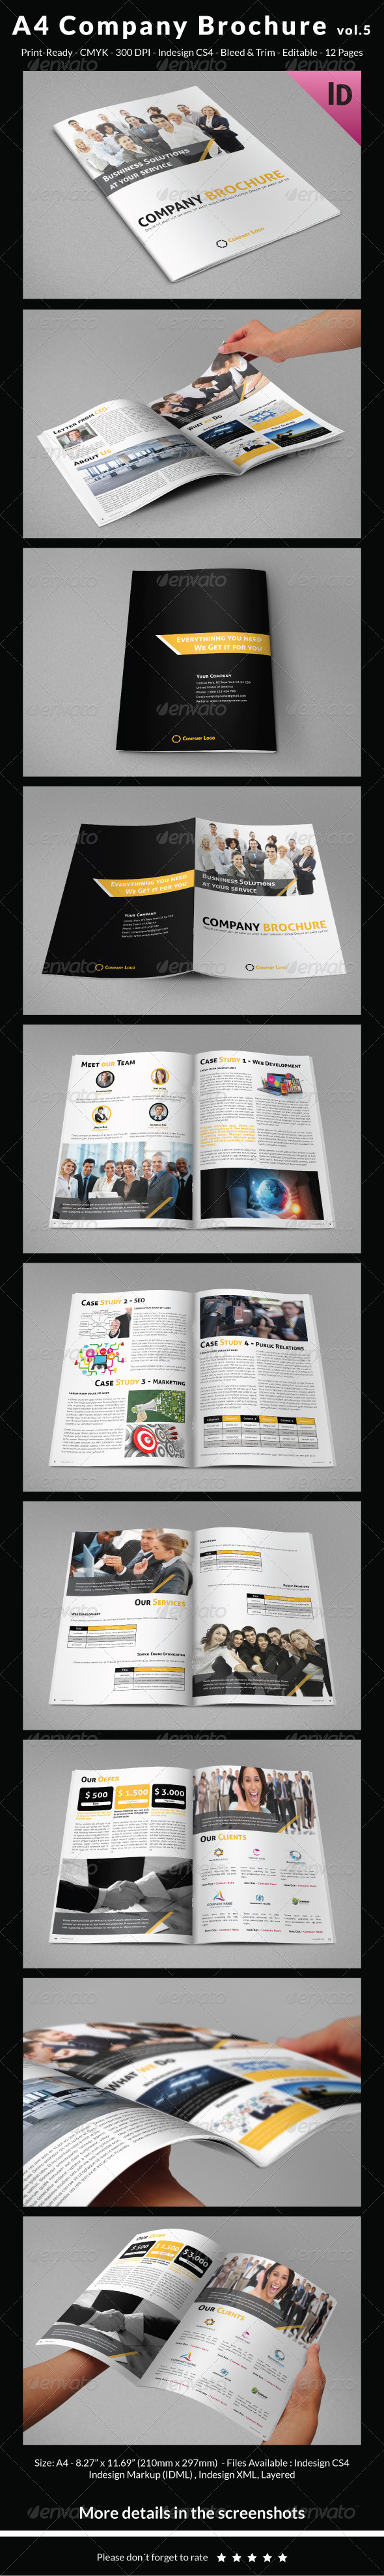 A4 Company Brochure vol.5 - Corporate Brochures